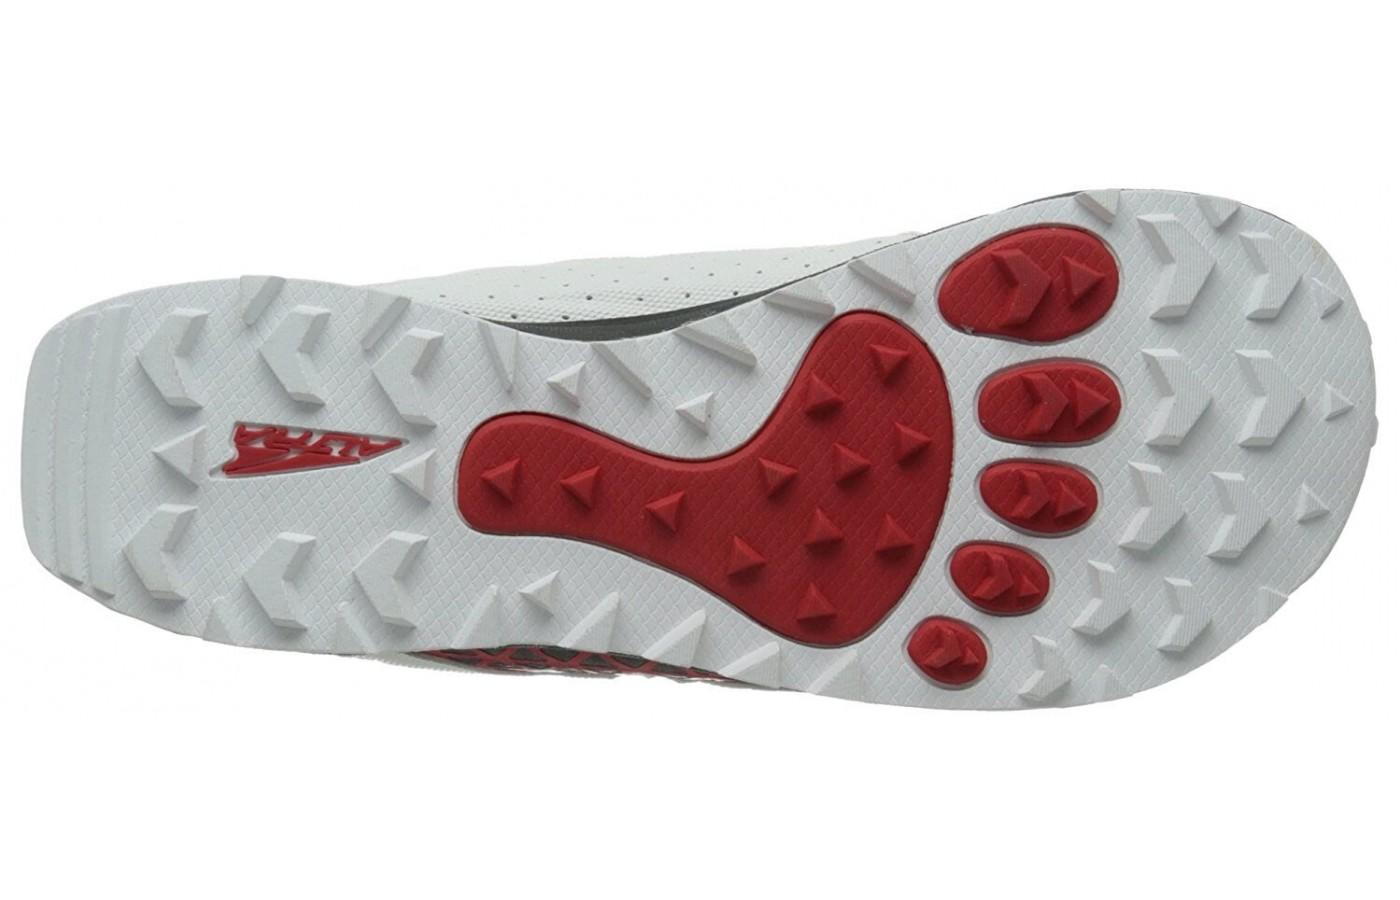 Altra Lone Peak 1.5 has a very grippy outsole